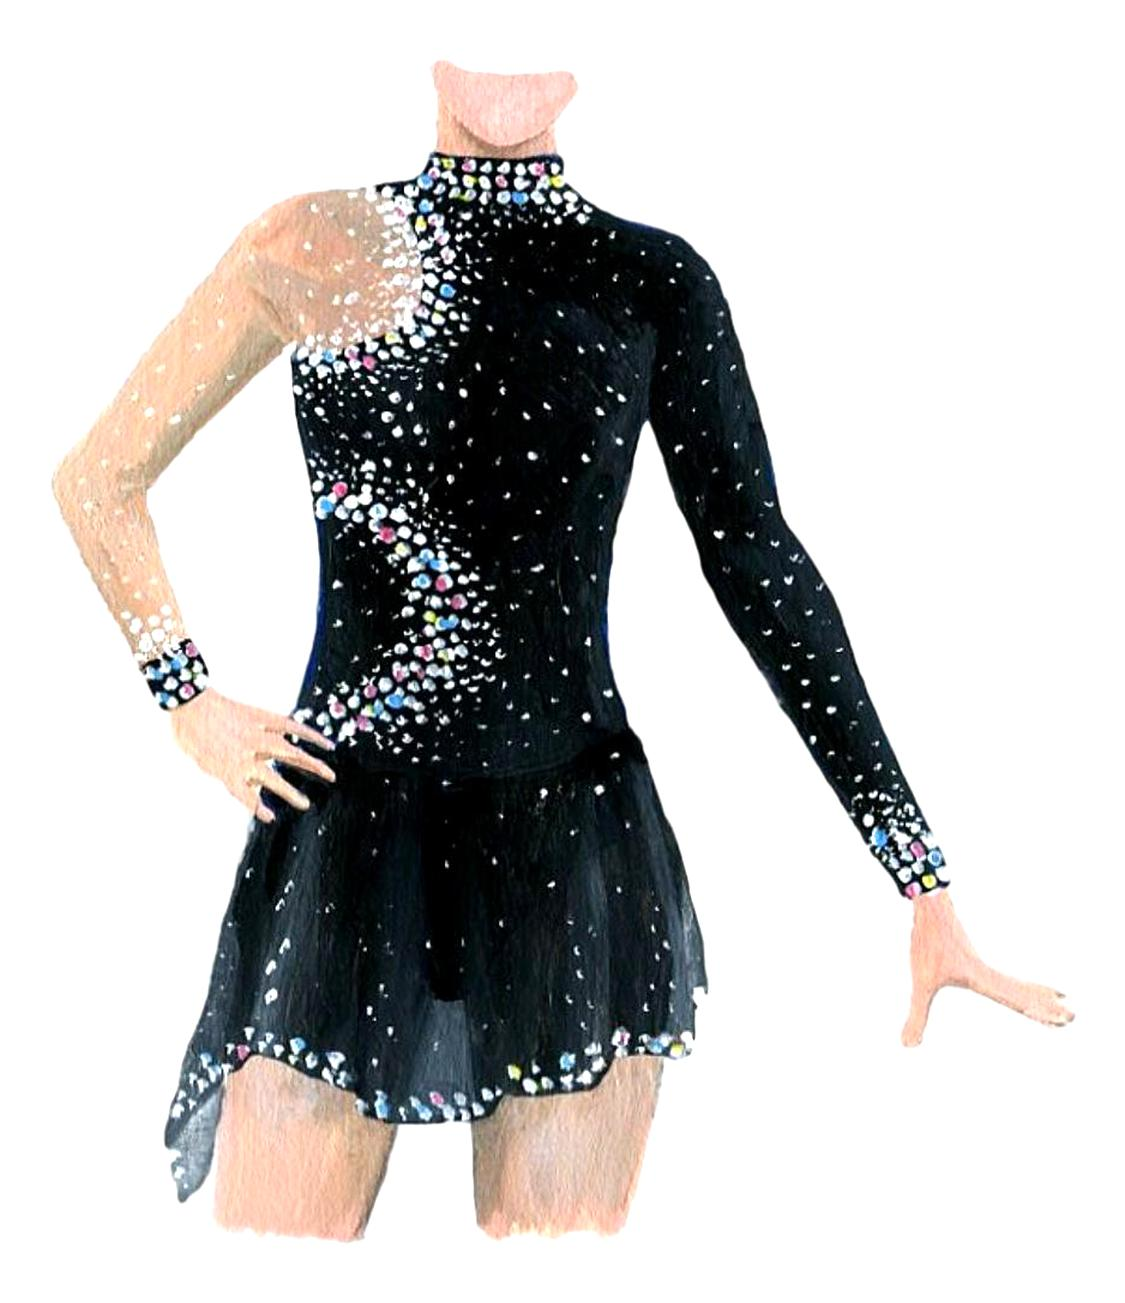 robe patinage patinage artistique d'occasion